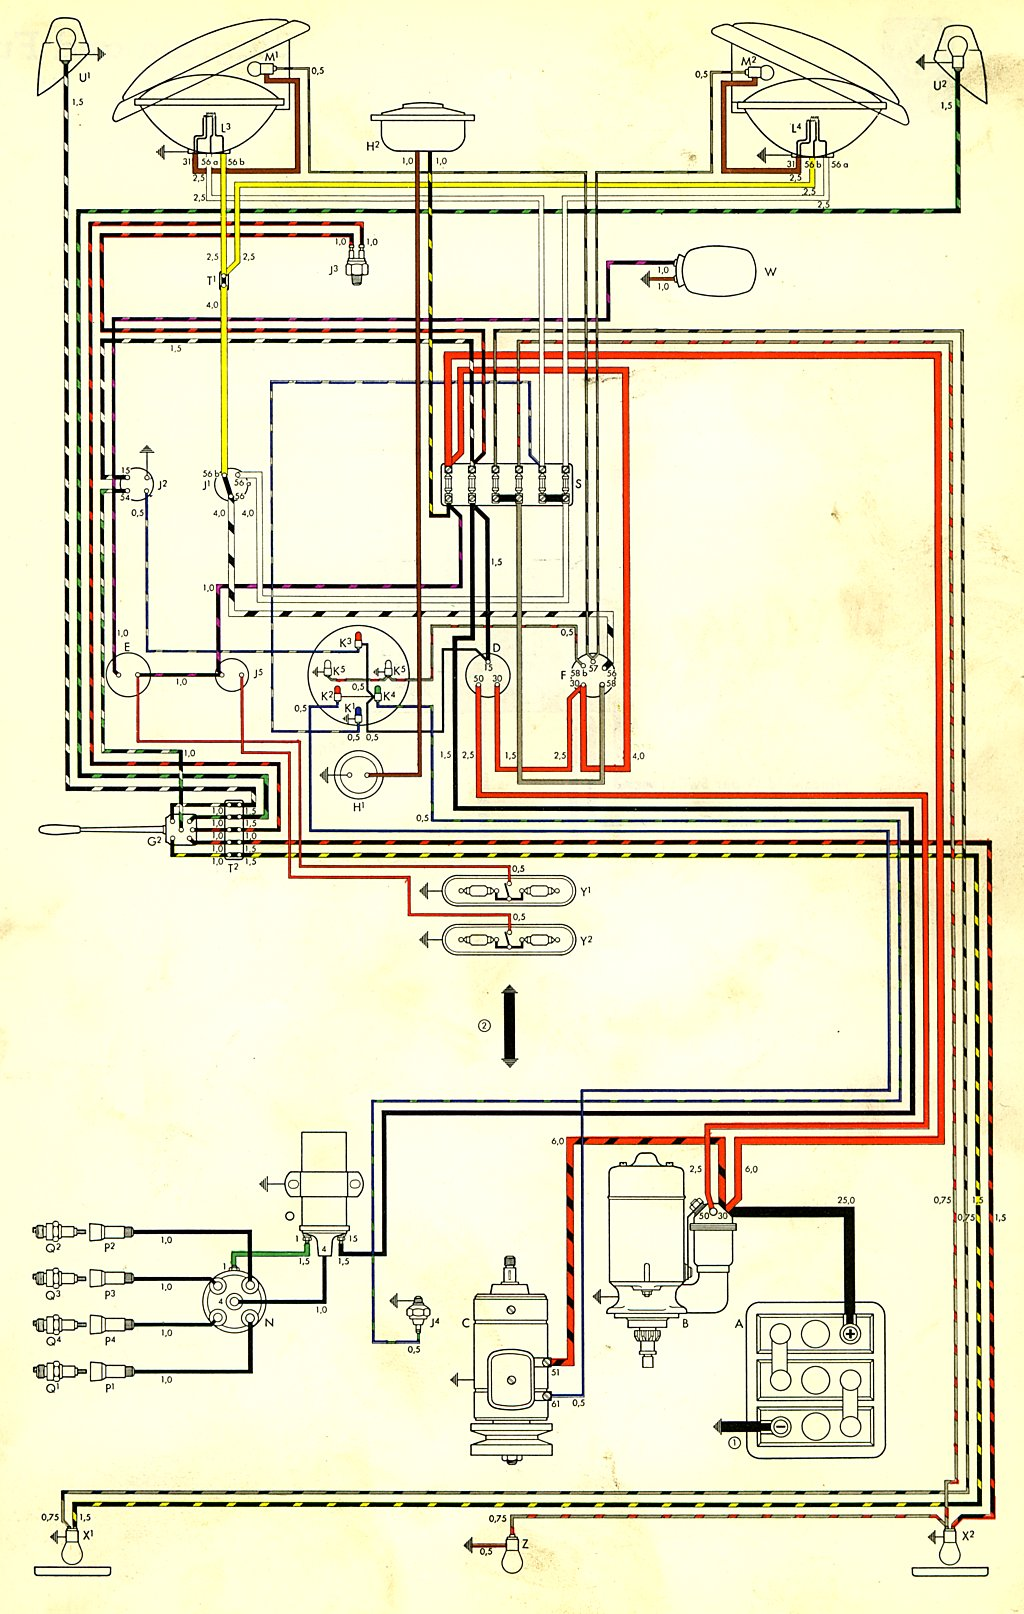 thesamba com type 2 wiring diagrams thesamba com type 2 wiring diagrams